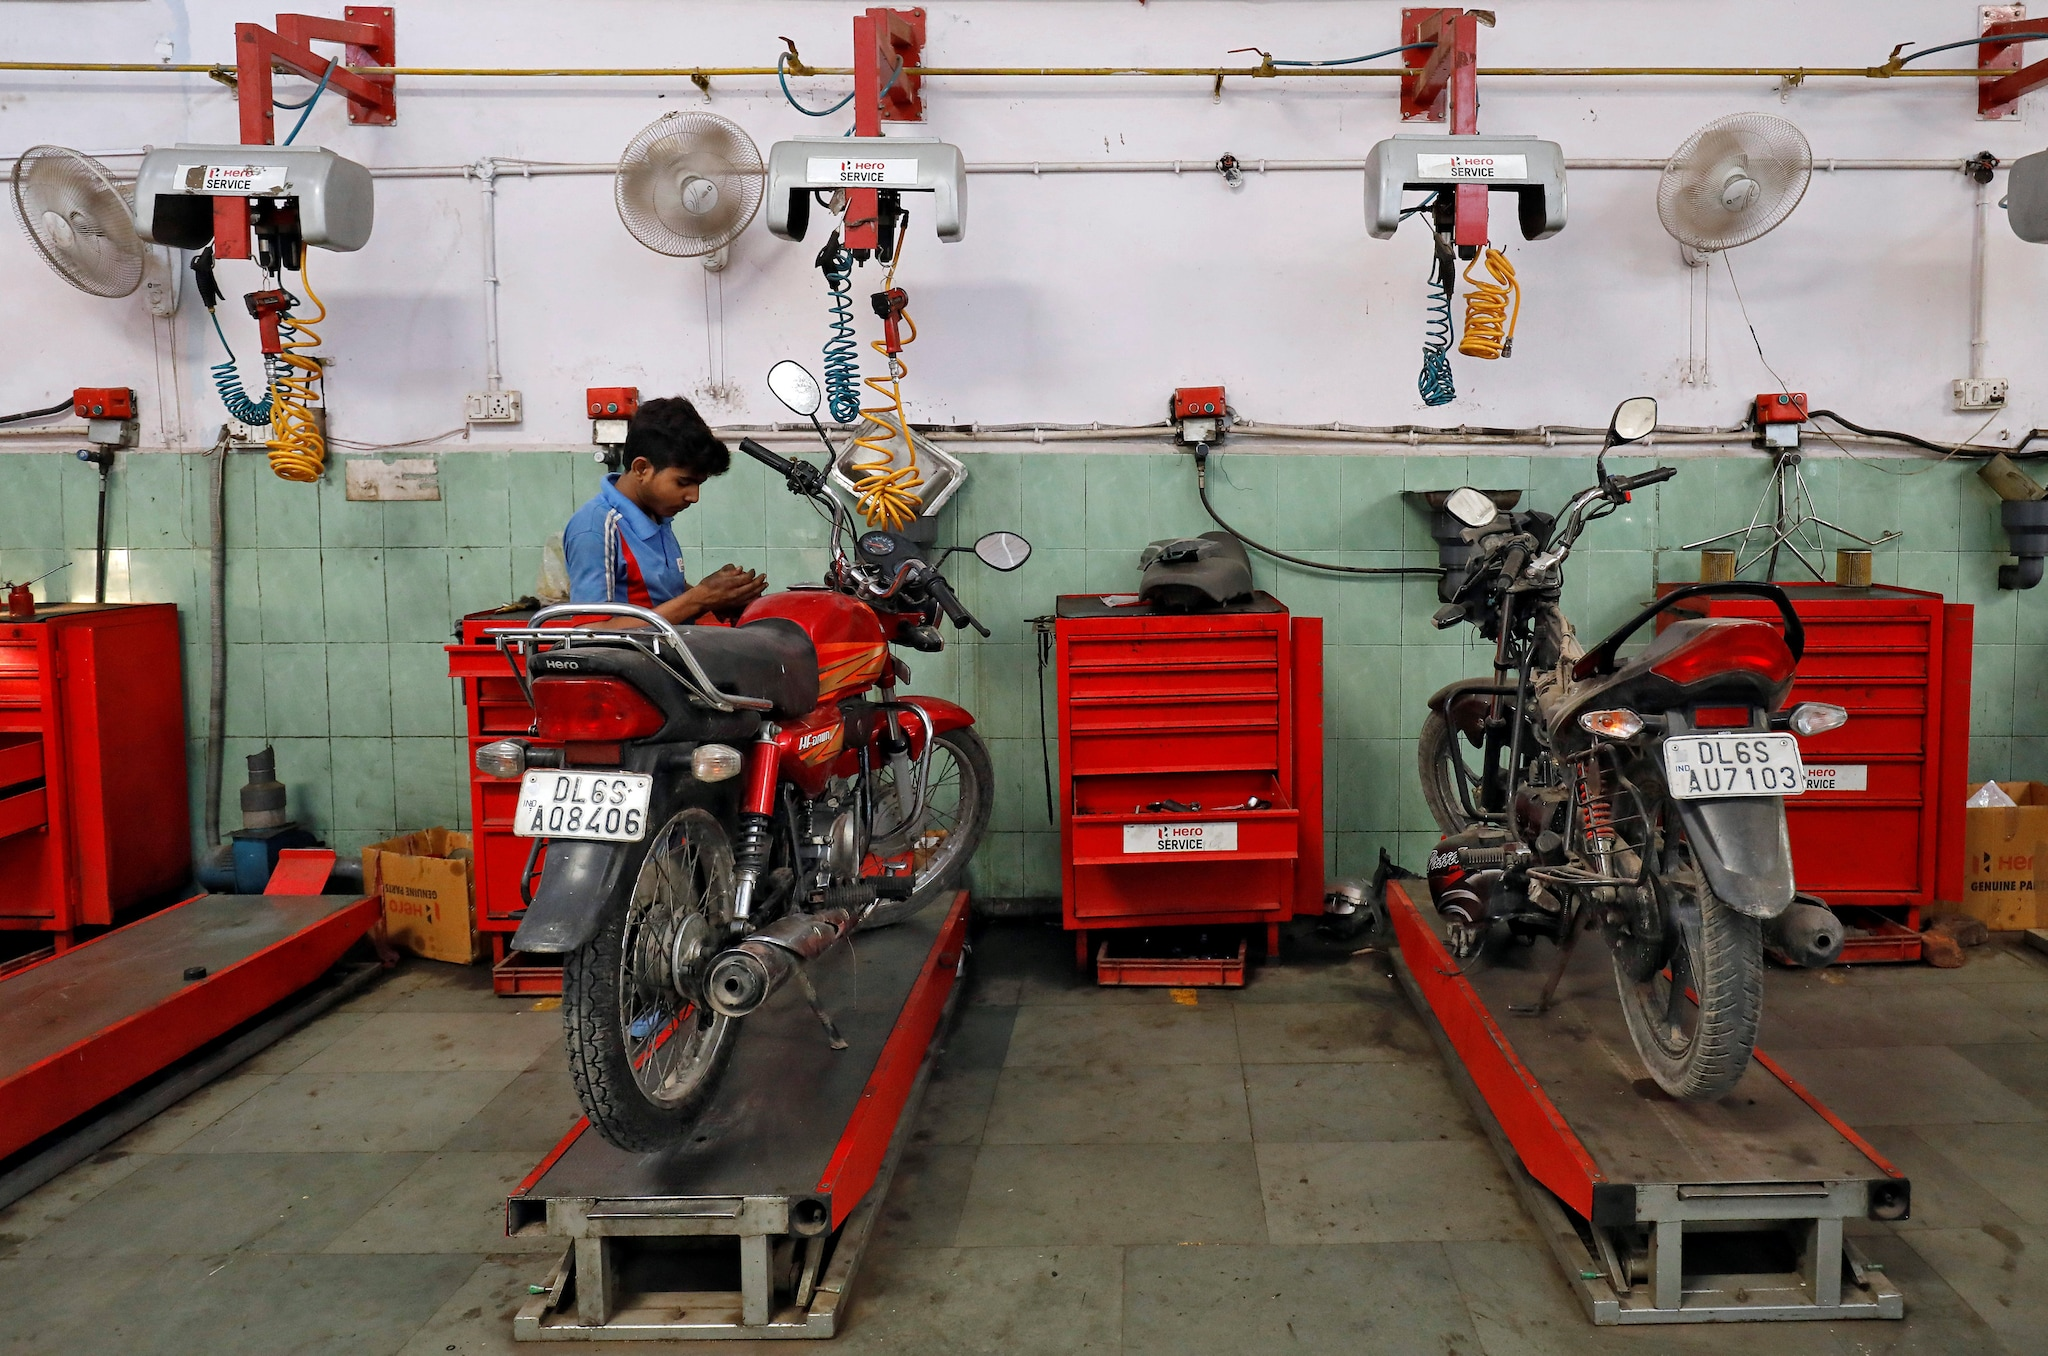 Hero MotoCorp fell 1.4 percent to hit its 52-week low of Rs 2,225.60 per share on the NSE after it posted a 35.89 percent increase in consolidated net profit at Rs 1,256.69 crore for the first quarter ended June 30, 2019, on the back of a one-off exceptional gain of Rs 737.48 crore. (Image: Reuters)